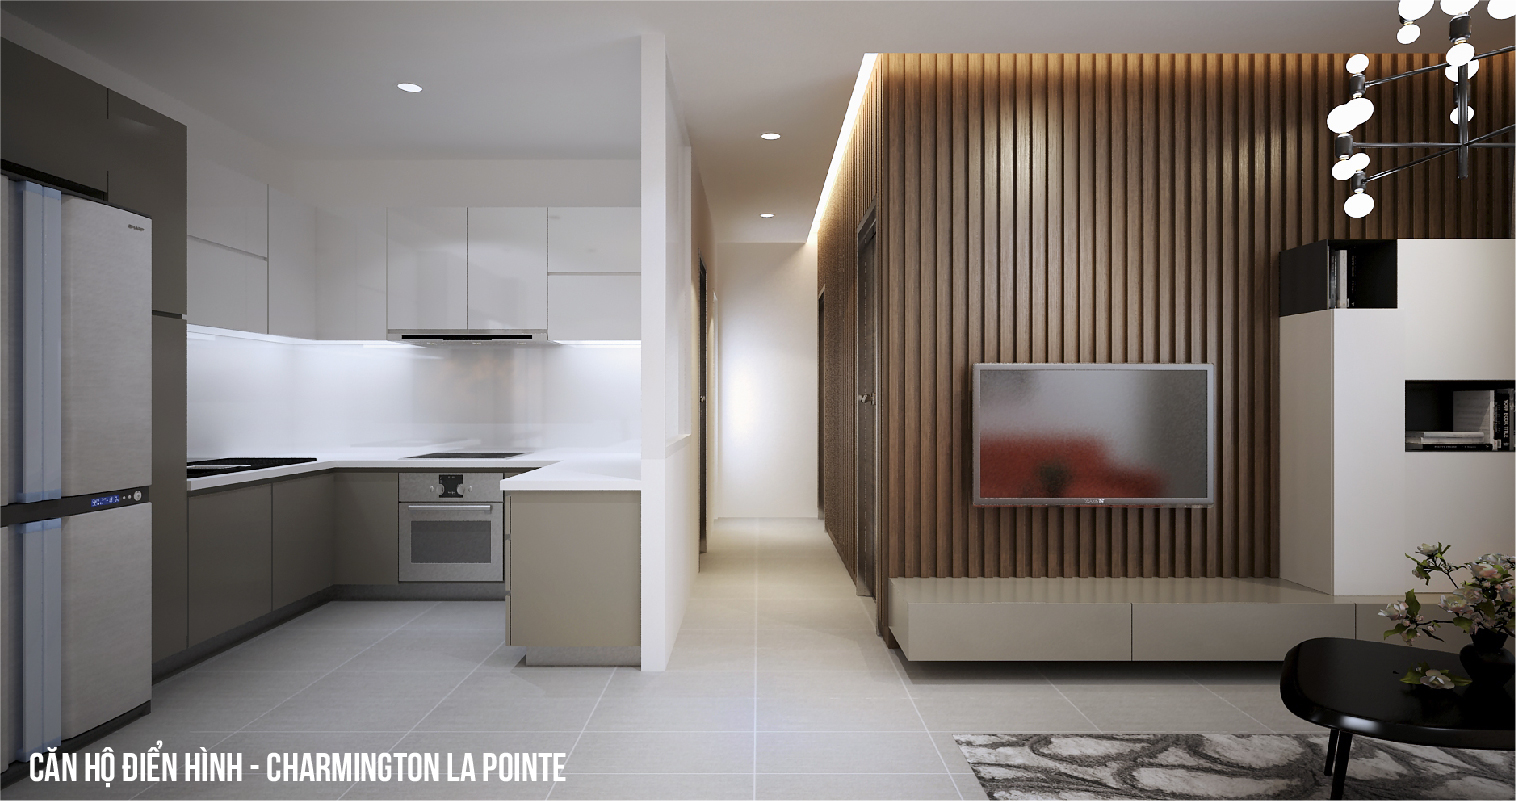 nCăn hộ Officetel Charmington La Pointe 35